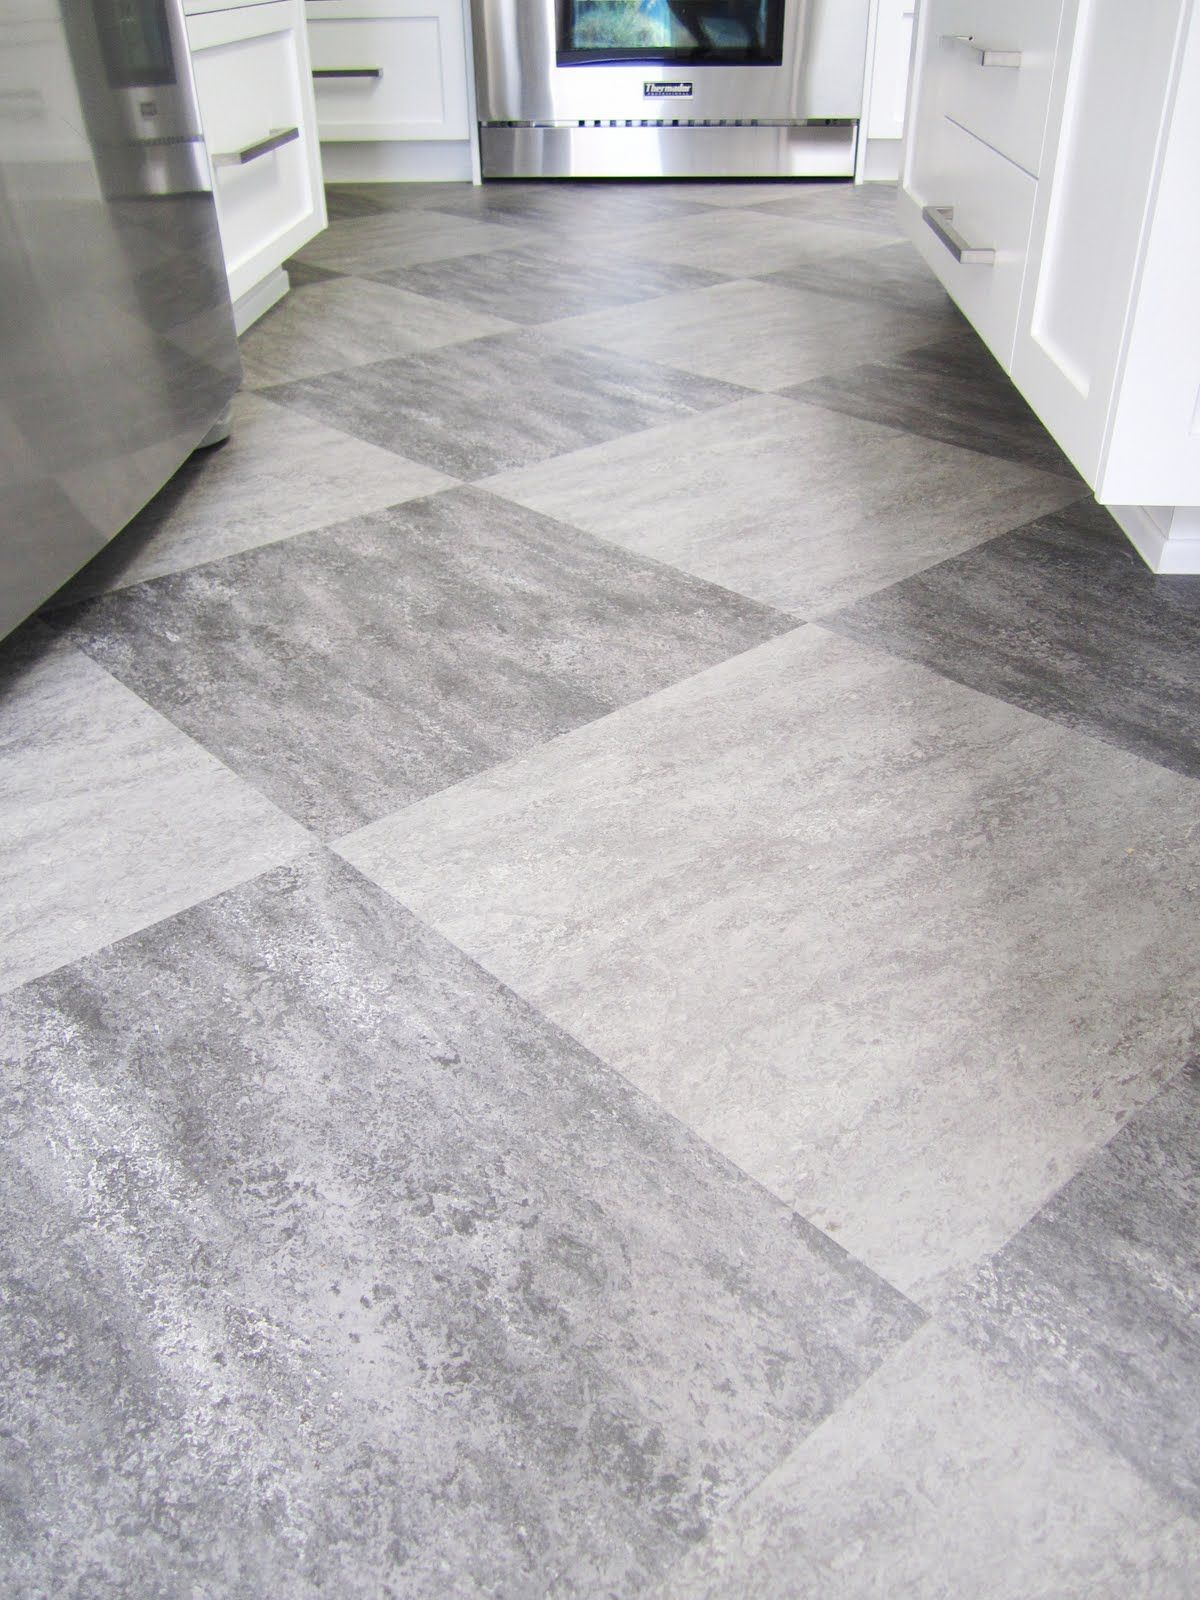 Bathroom floor vinyl tiles - Harlequin Tile Floors Harlequin Of Grey On Grey Tiles Is Used On The